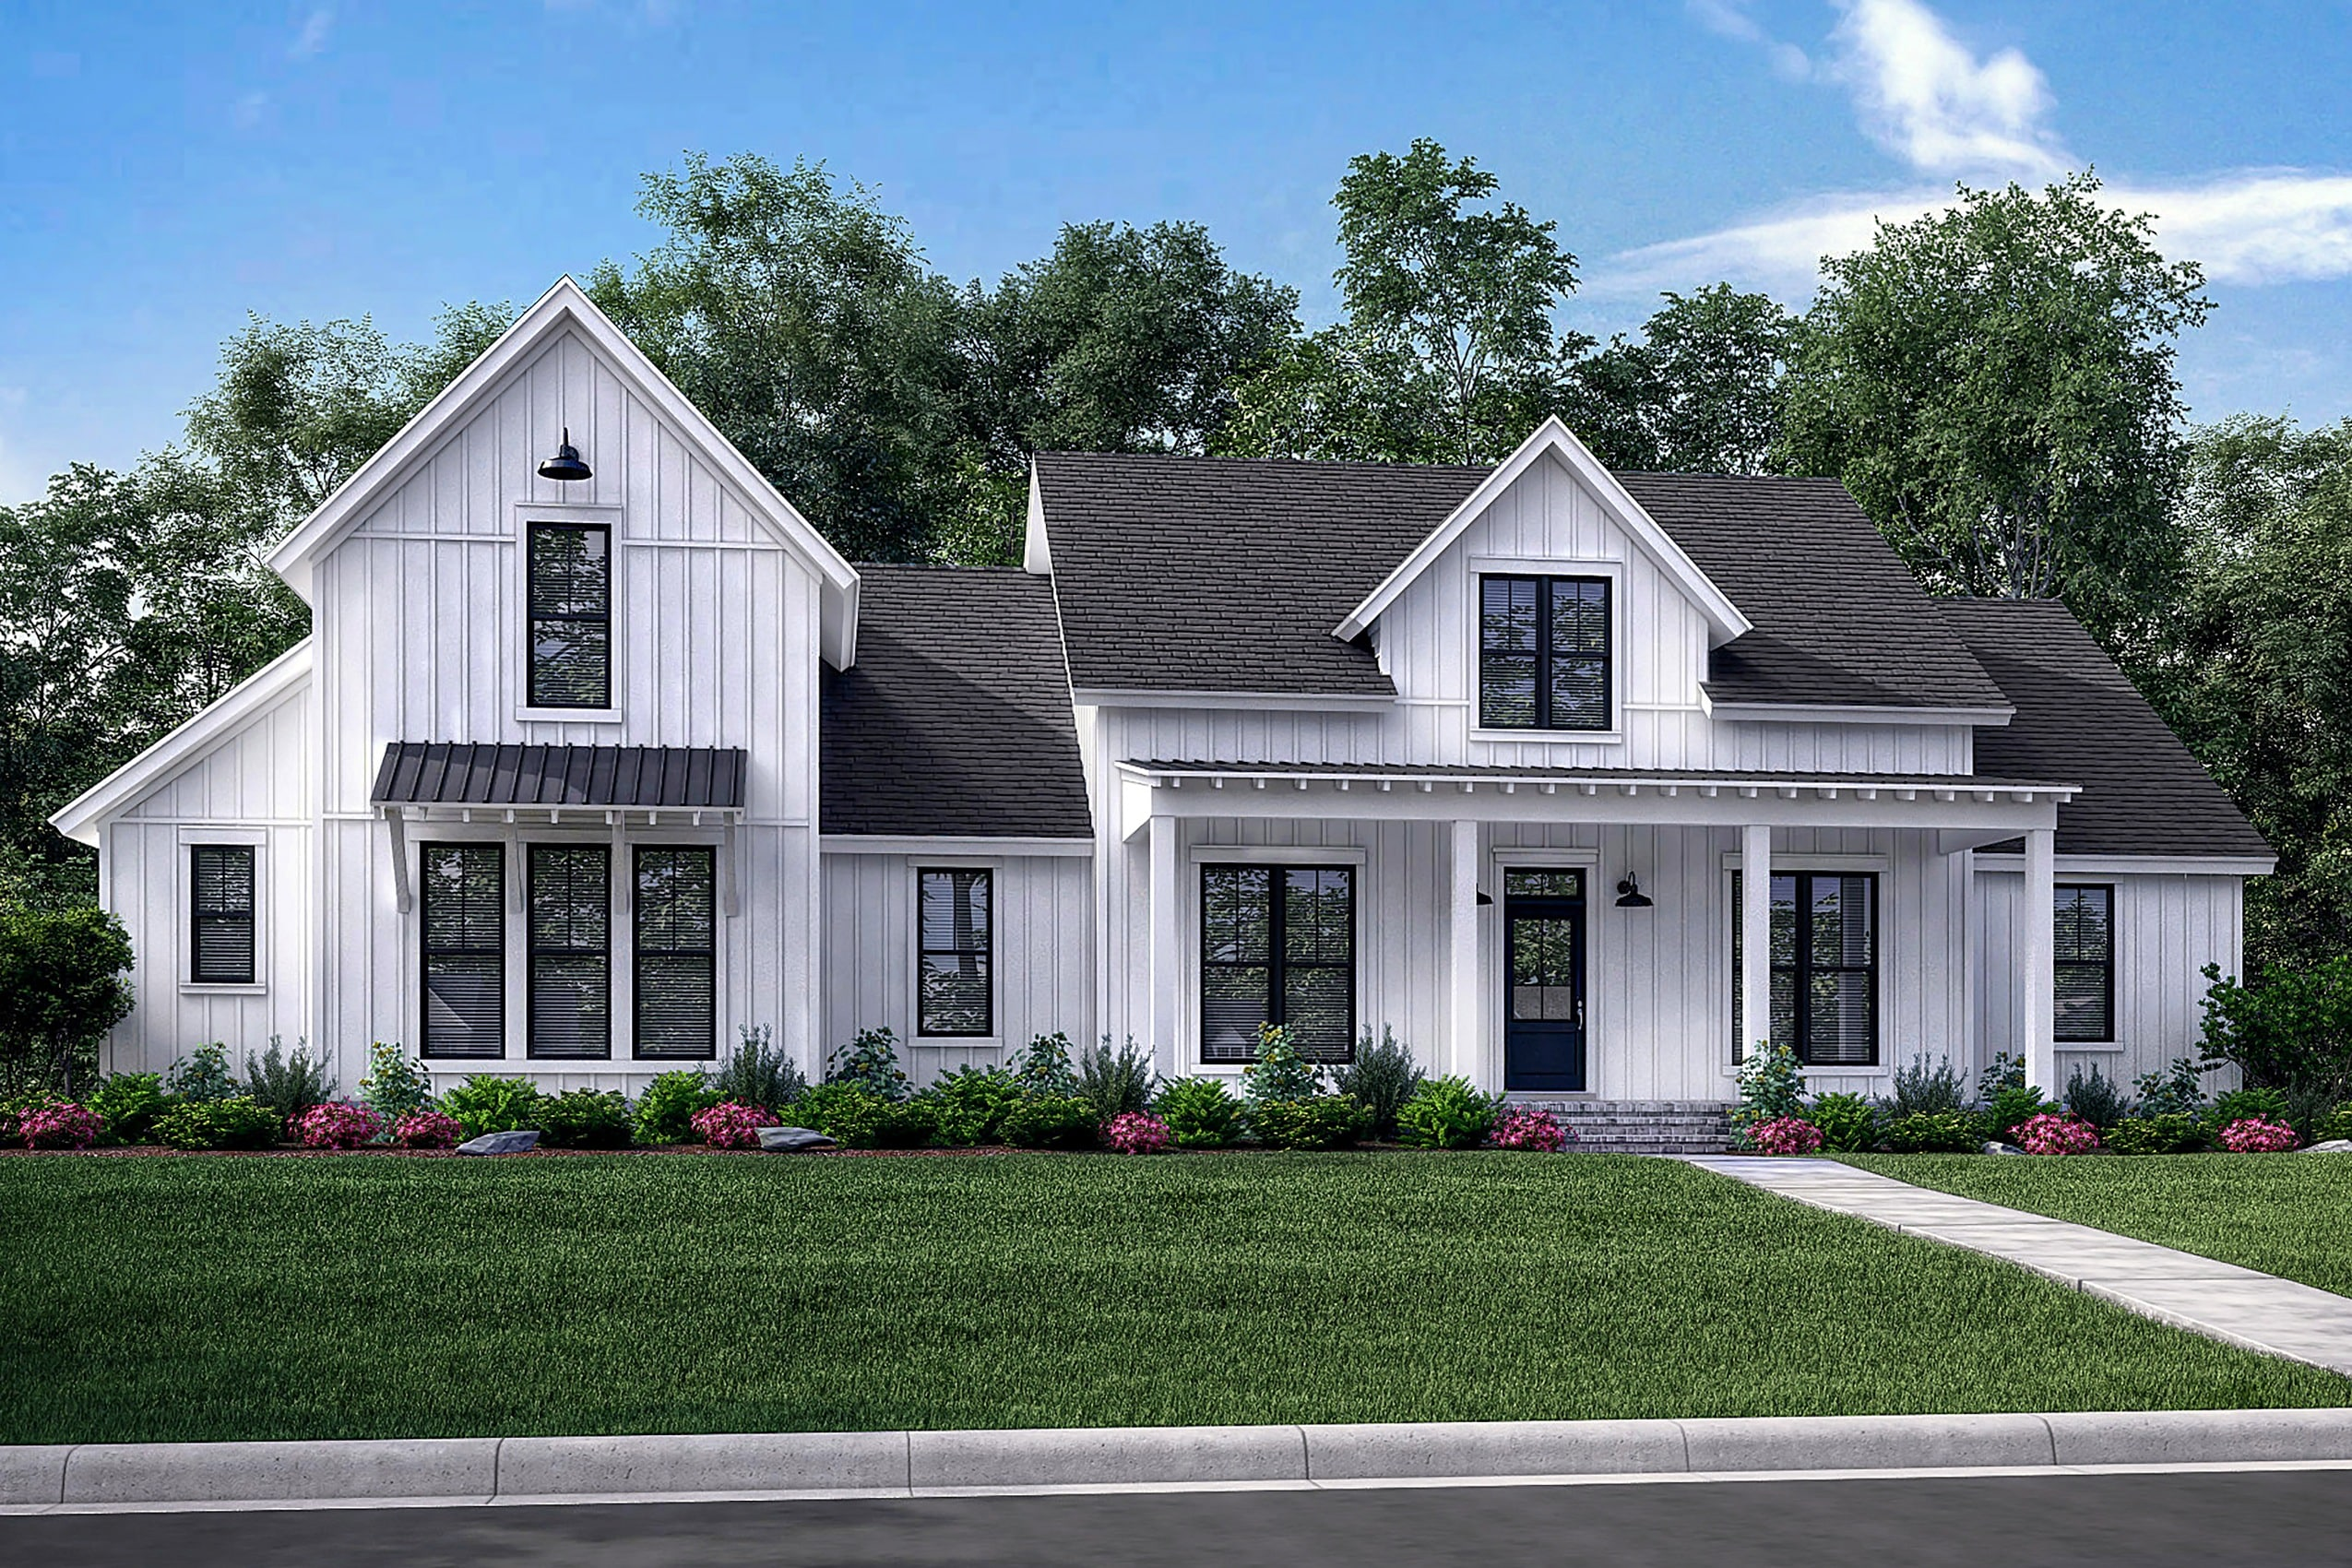 Small house plan home plan 142 -  142 1185 Front Elevation Of Craftsman Home Theplancollection House Plan 142 1185